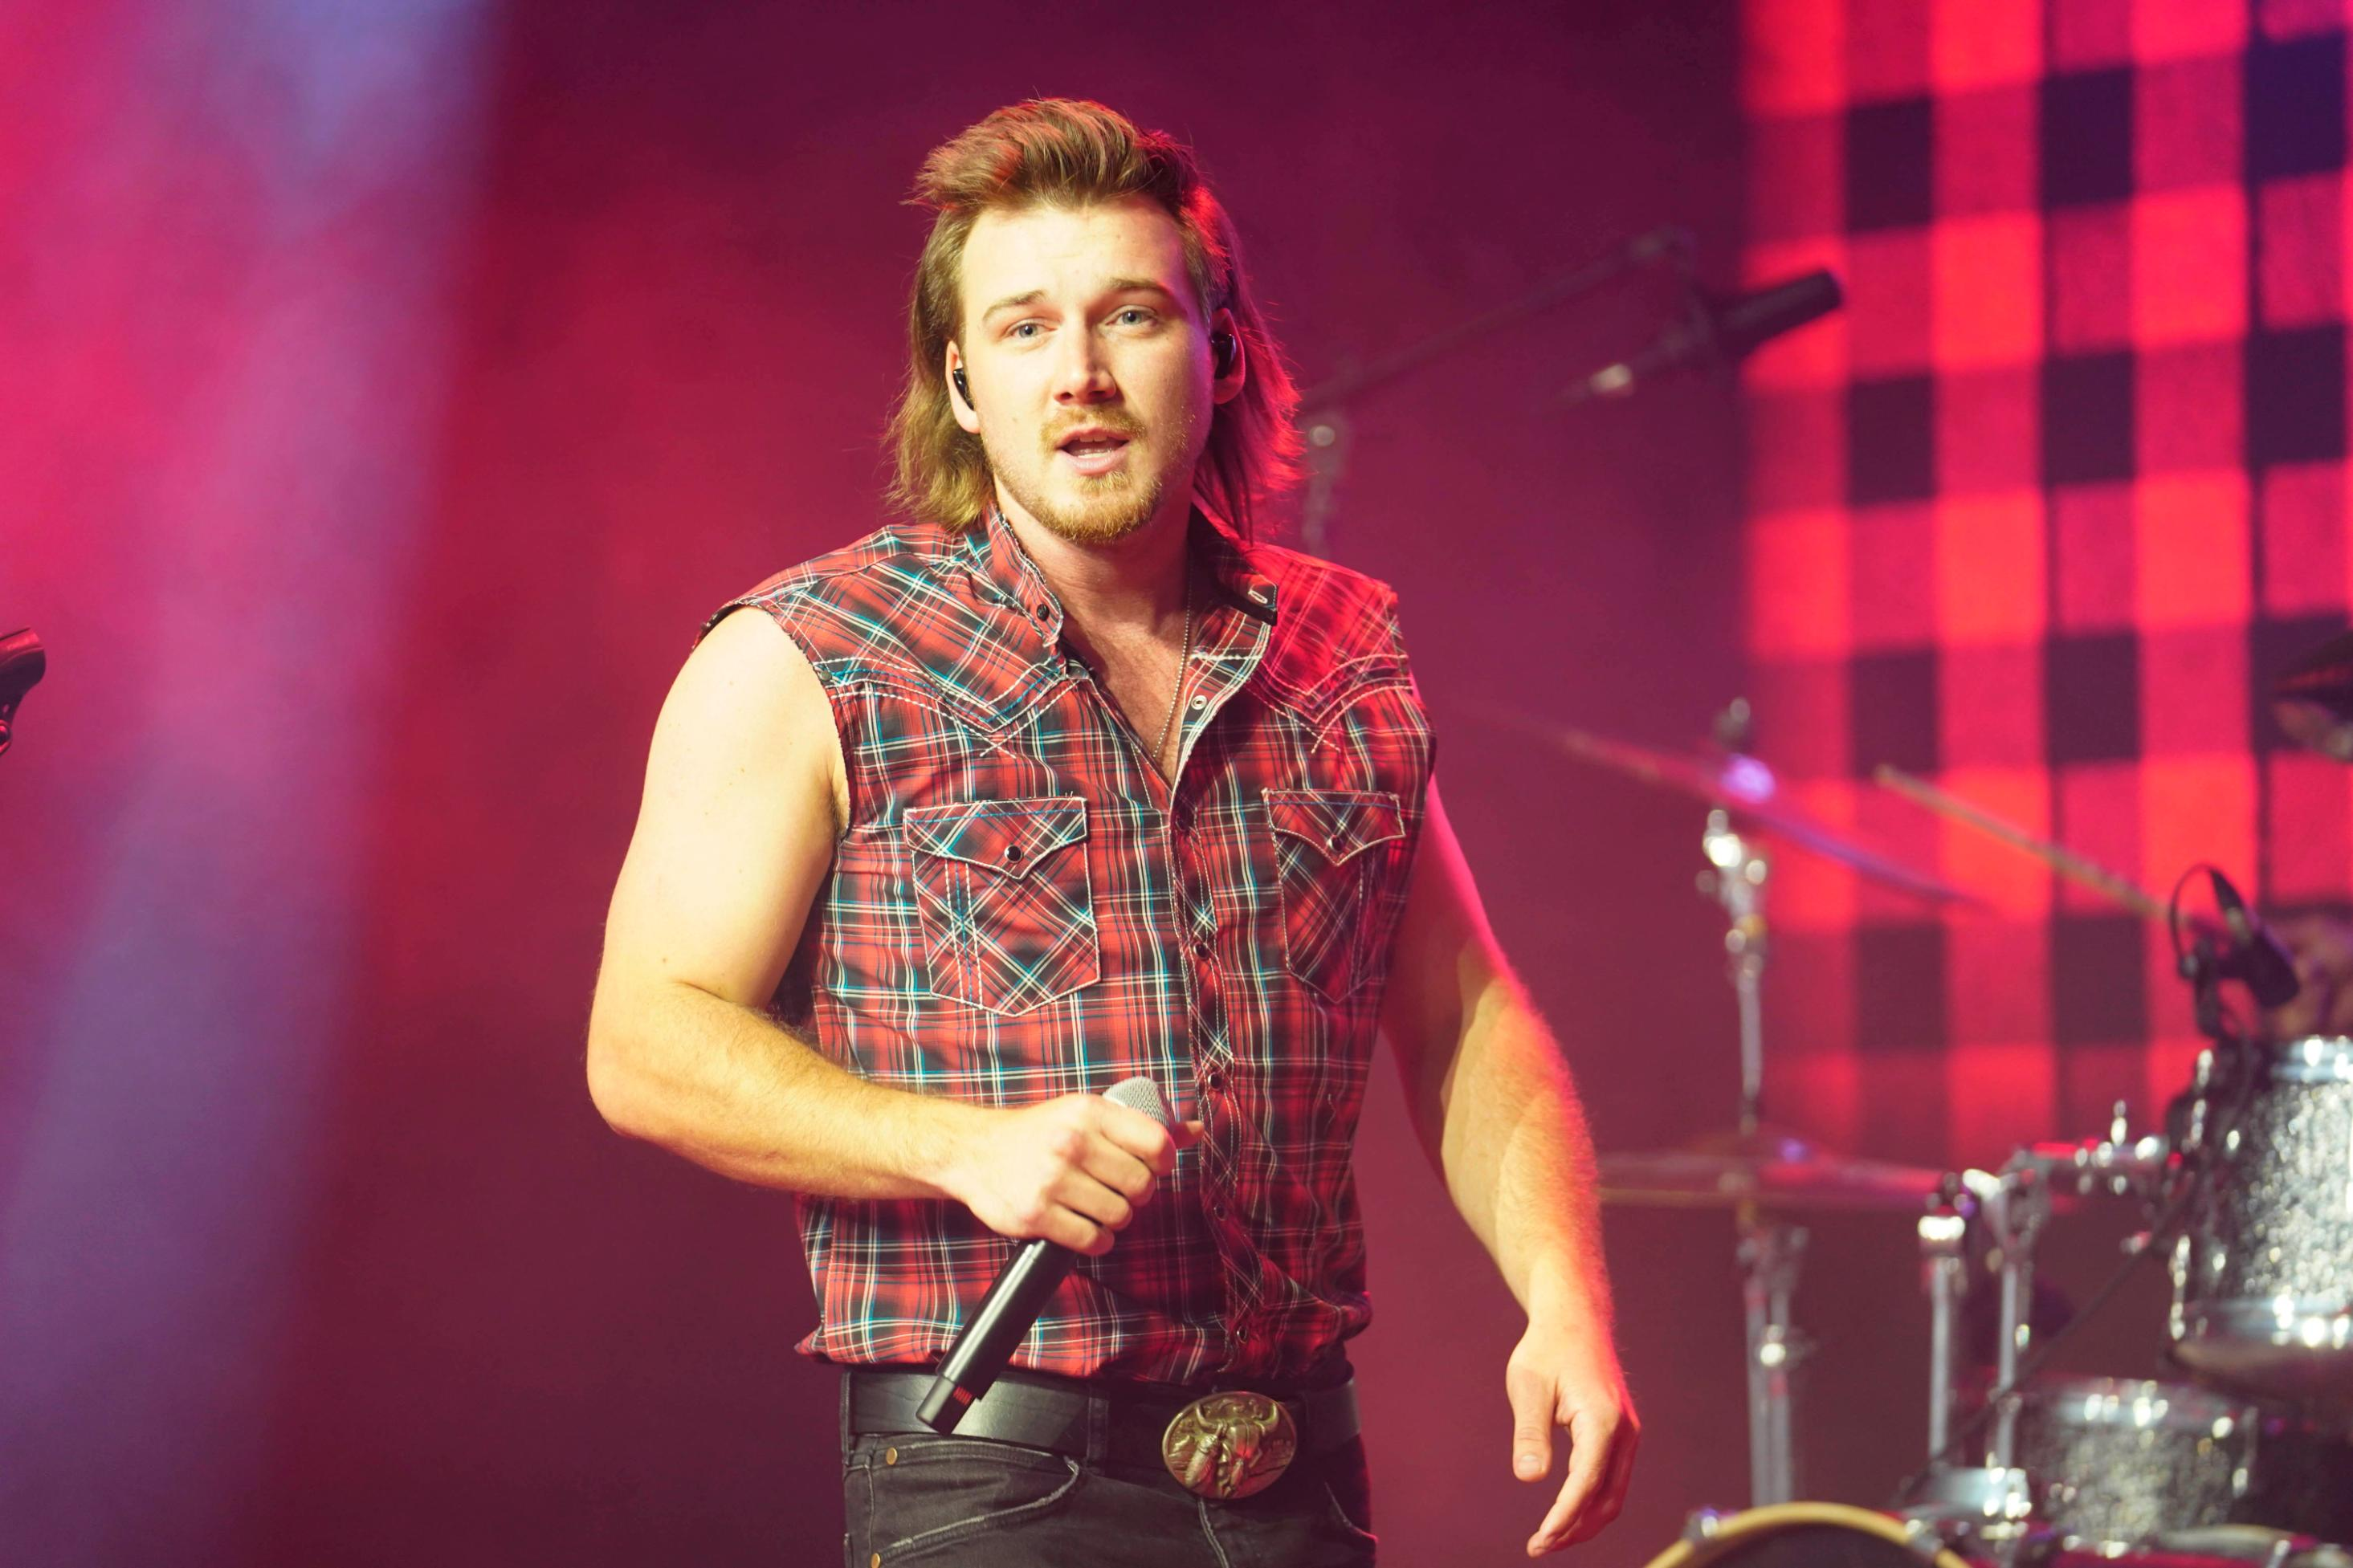 Oops Morgan Wallen Hurls N-Word Outside Home After Rowdy Night Out -2/2/21